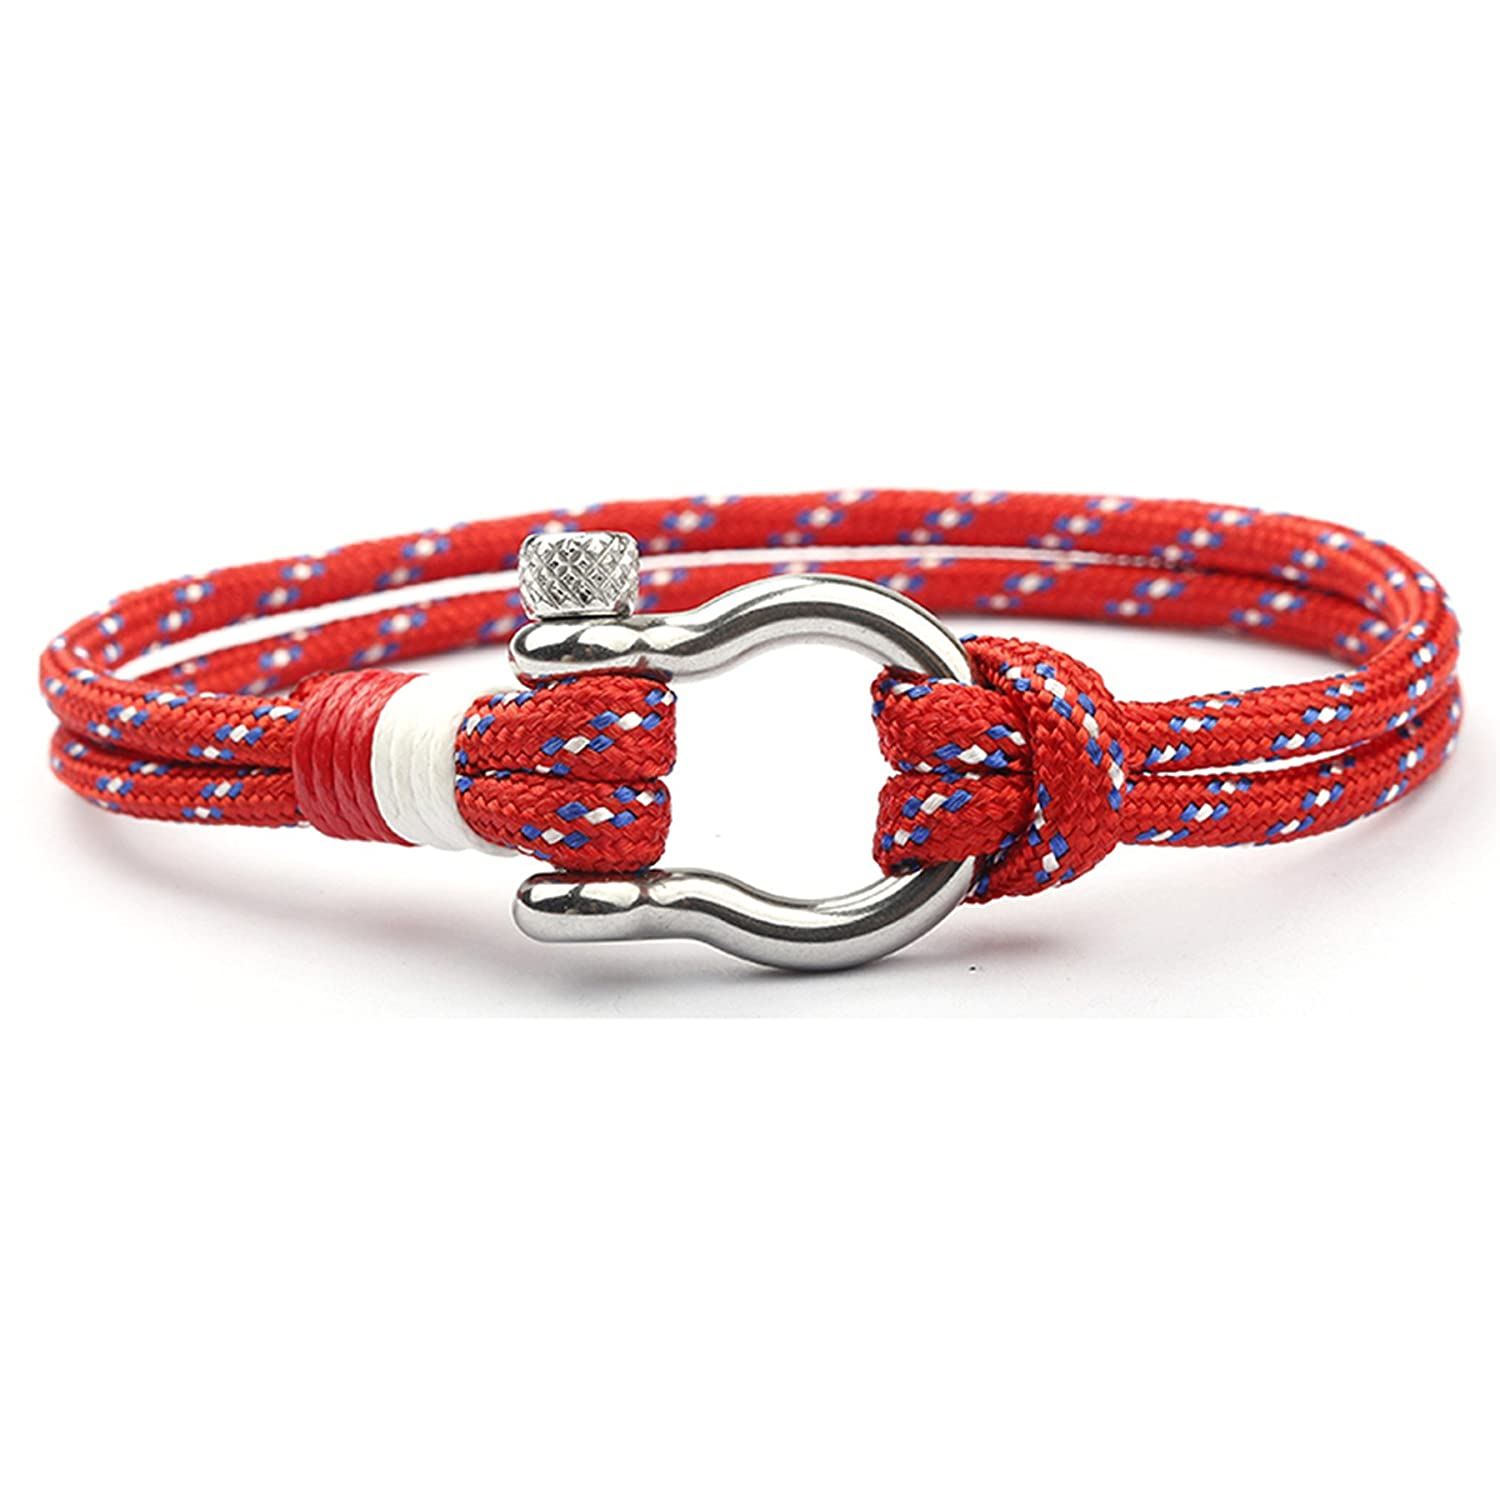 DreamMarker Happiness Jewelry Nylon Paracord Double Rope Sailing Bracelet with Nautical Stainless Steel Anchor Shackle Clasp ChuWen Jewelry